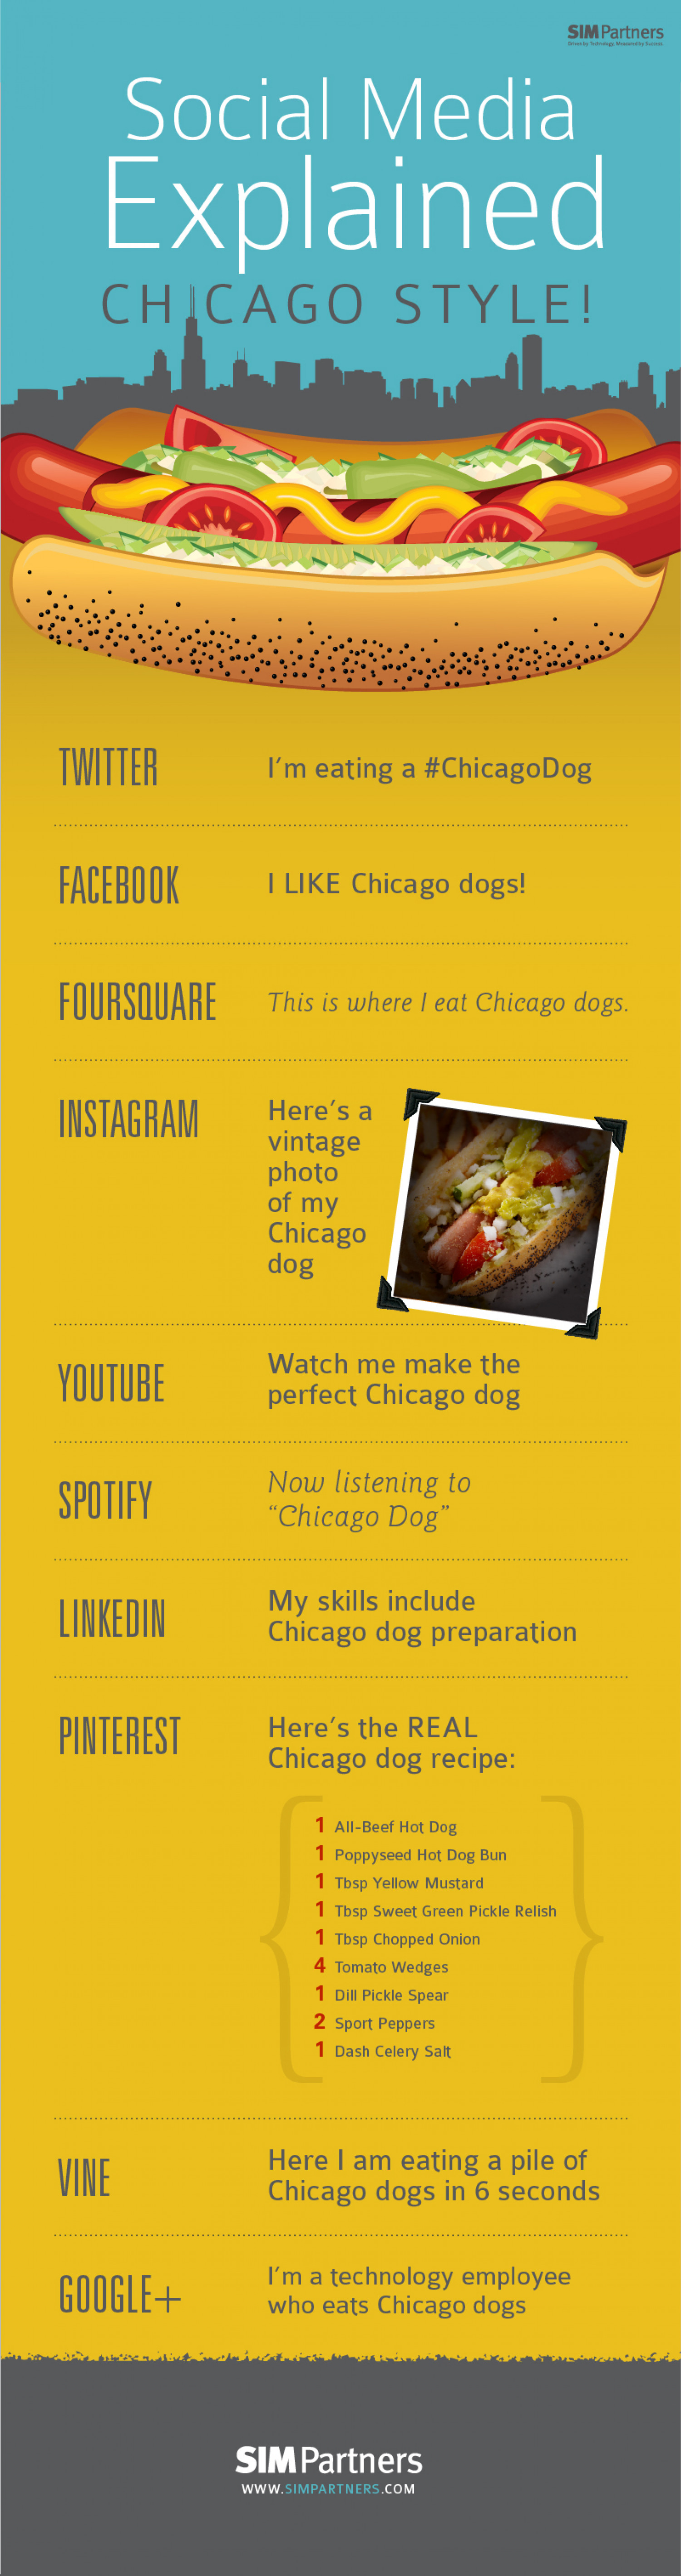 Social Media Explained: Chicago Style! Infographic